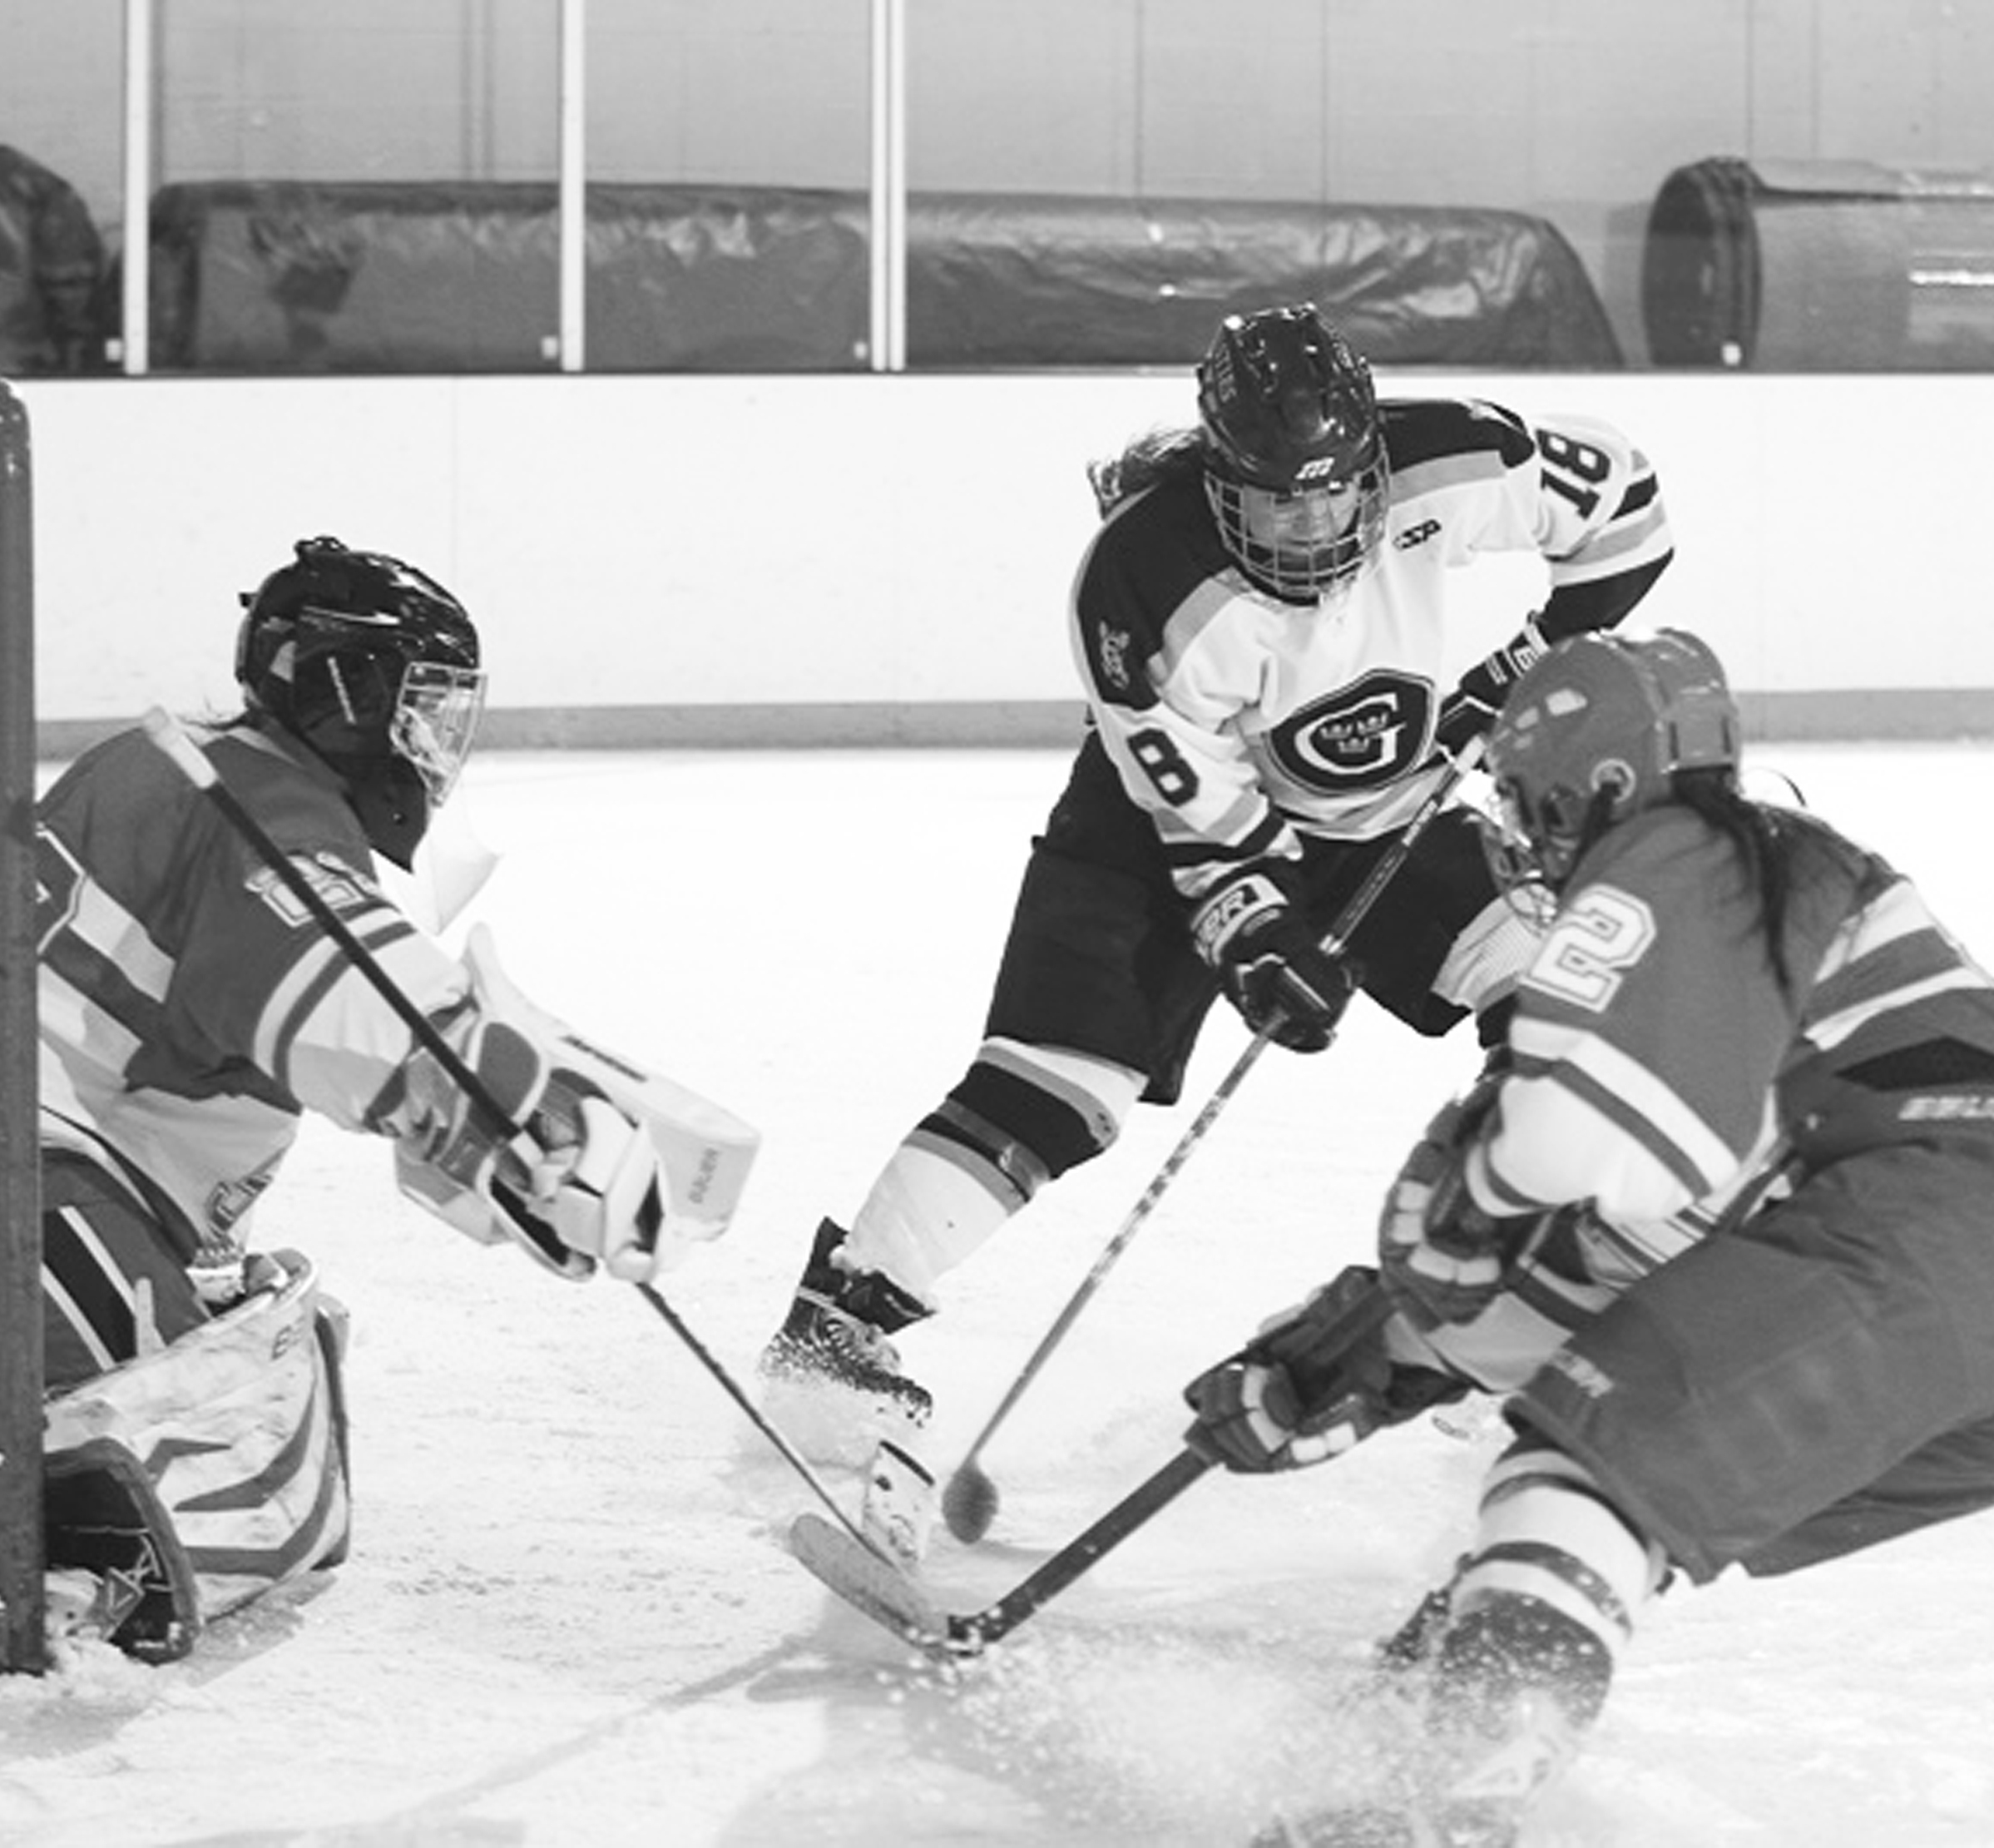 Undefeated women's hockey clinches #1 seed in MIAC | The ...